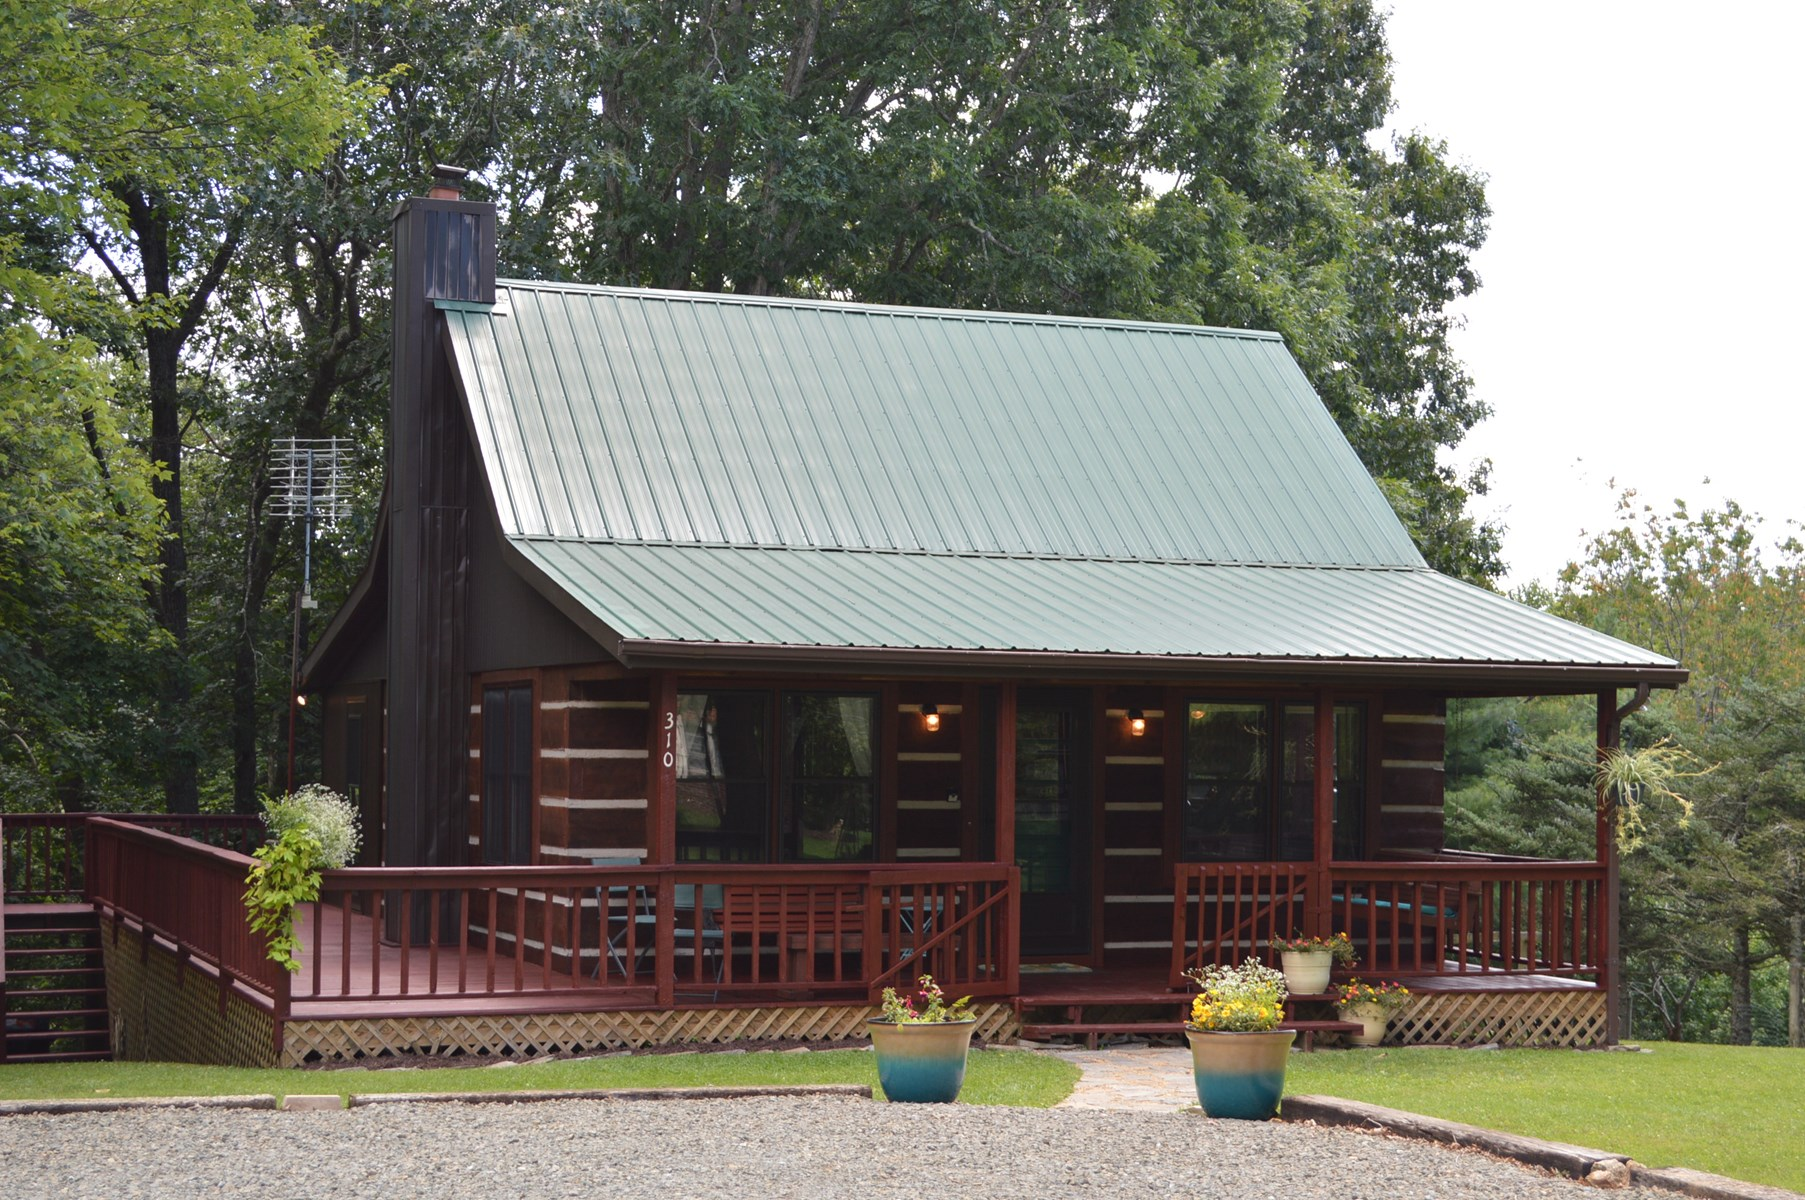 Quaint Cabin for sale in Independence, VA 2 BR 1 BA